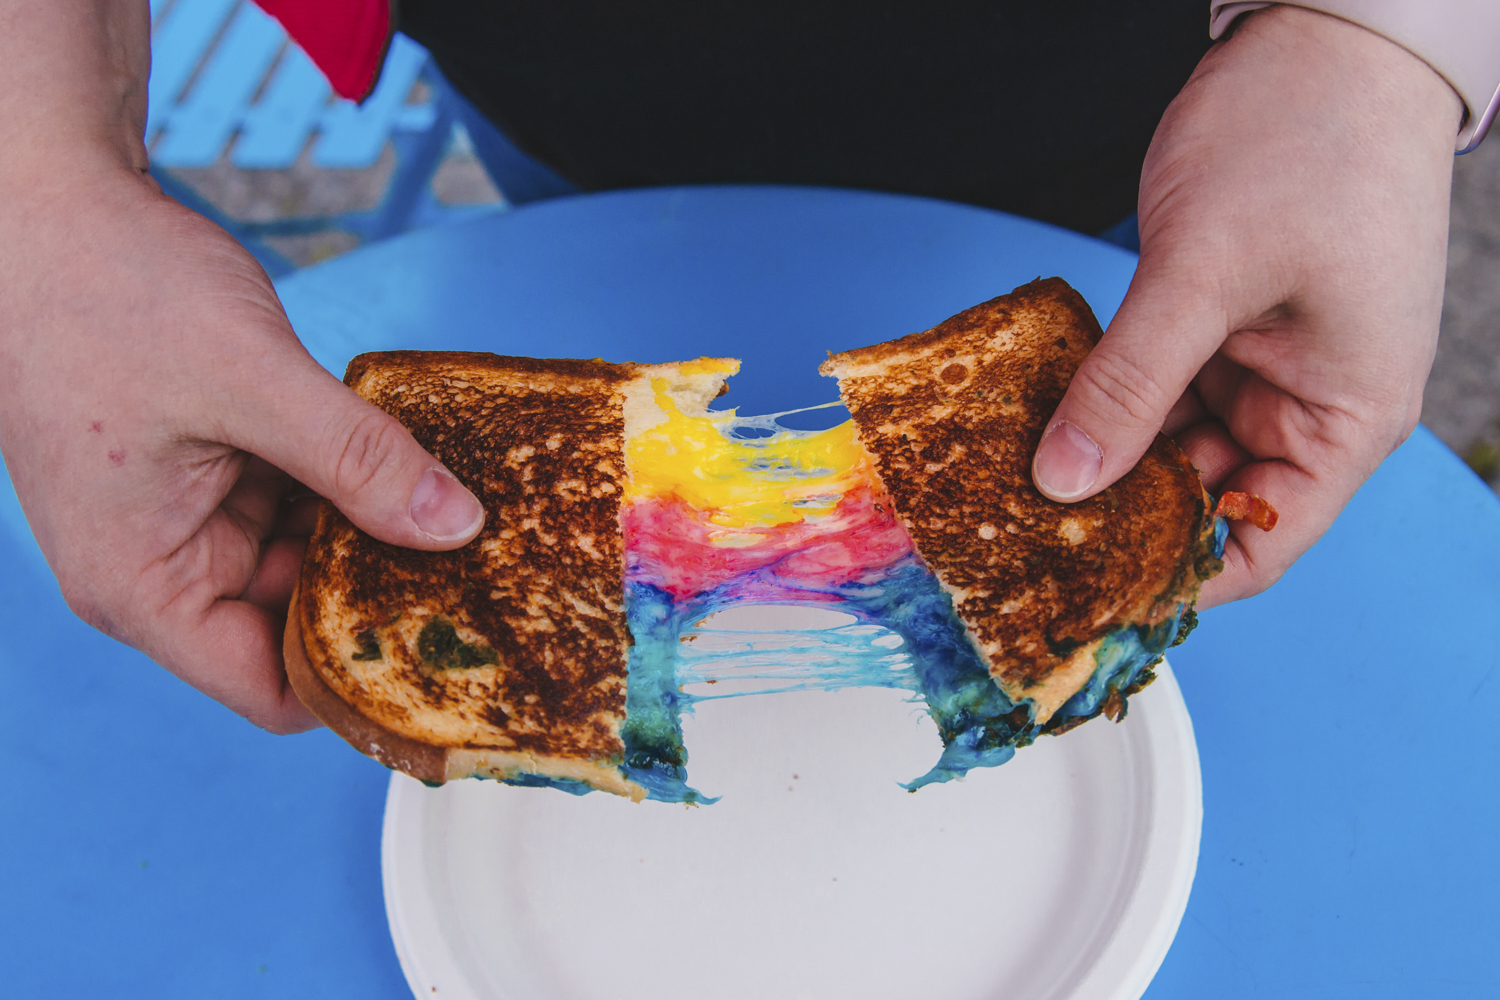 <p>&quot;Unicorn Grilled Cheese&quot; from Island Grilled Cheese.  A rainbow of Darigold Cheese between two perfectly toasted slices of bread. Seattle's annual Grilled Cheese Grand Prix event kicked off this weekend, properly celebrating April as National Grilled Cheese Month. We went, obviously (for work....) and here were the juiciest sammies on the block we could find. The good news? Pretty much all of these come from brick and mortar stores you can find any time in the city - not just April, and not just t the Grand Prix. (Image: Sunita Martini / Seattle Refined)</p>